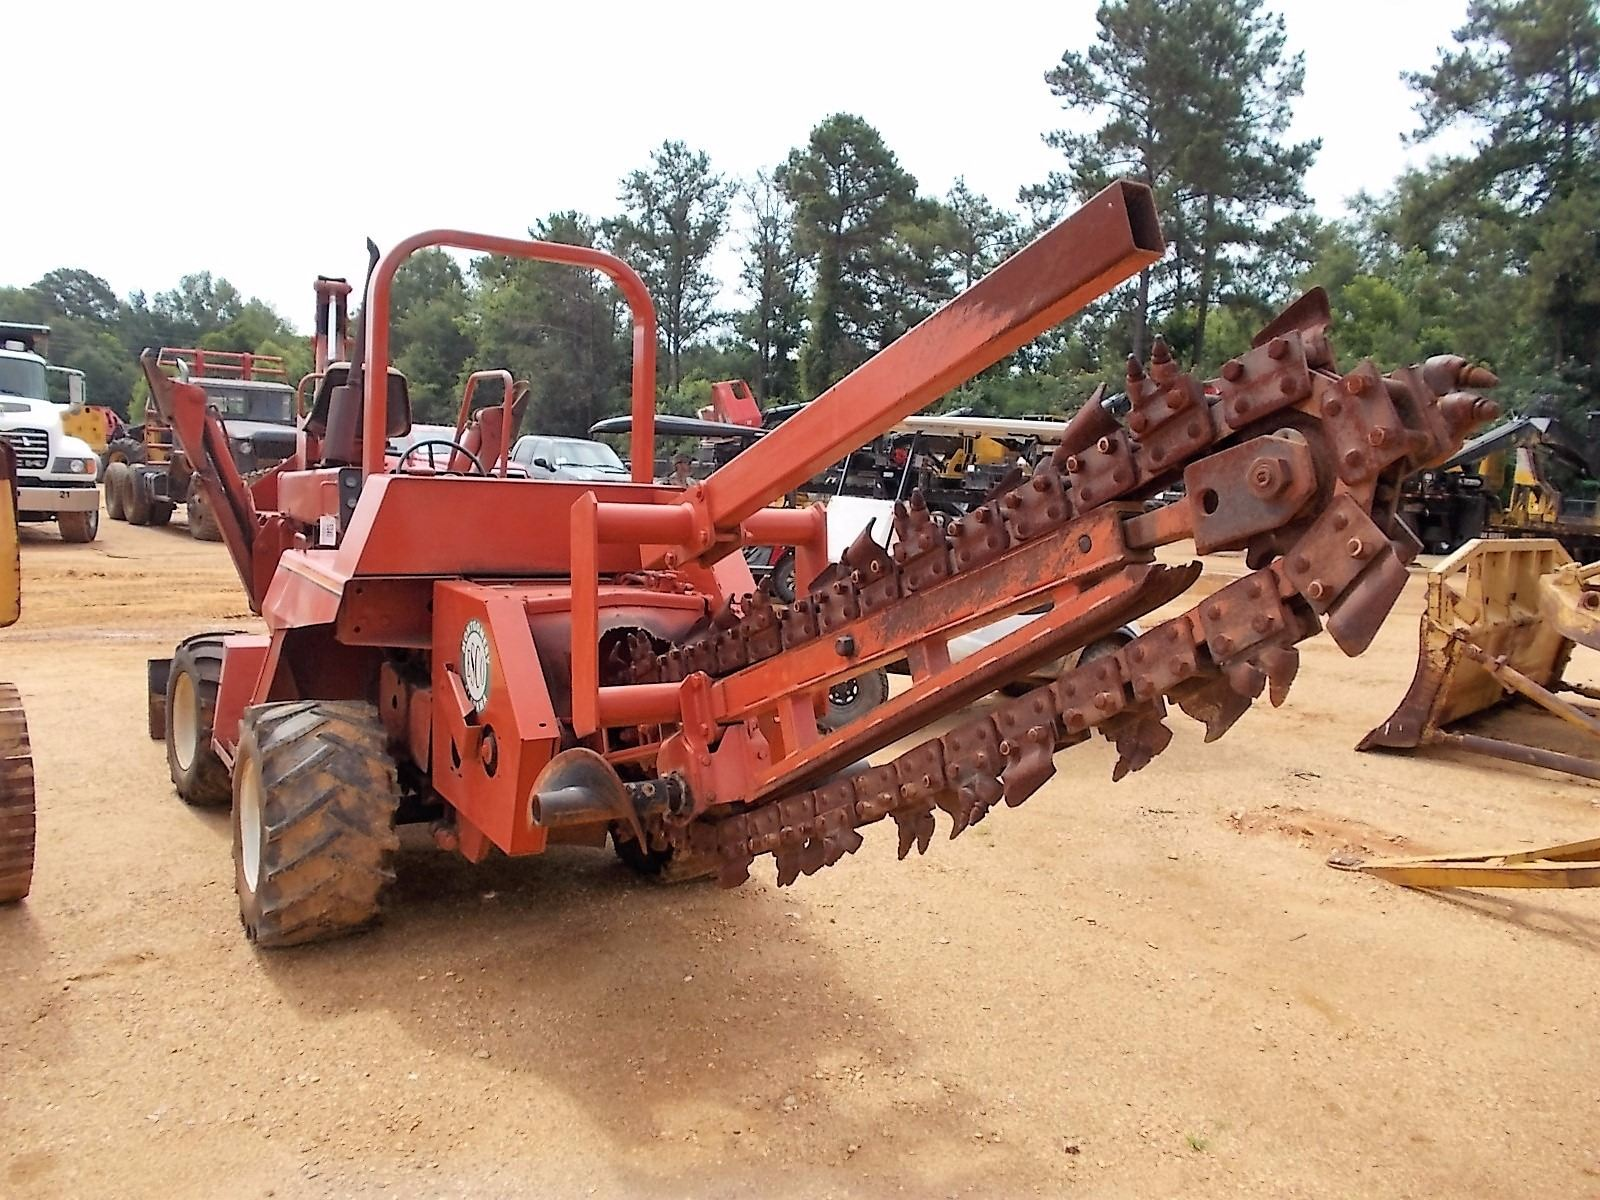 1989 DITCH WITCH 6510 TRENCHER, VIN/SN:6F0164 - REAR 8' TRENCHER, FRONT 4X4  BACKHOE ATTACHMENT, BACK